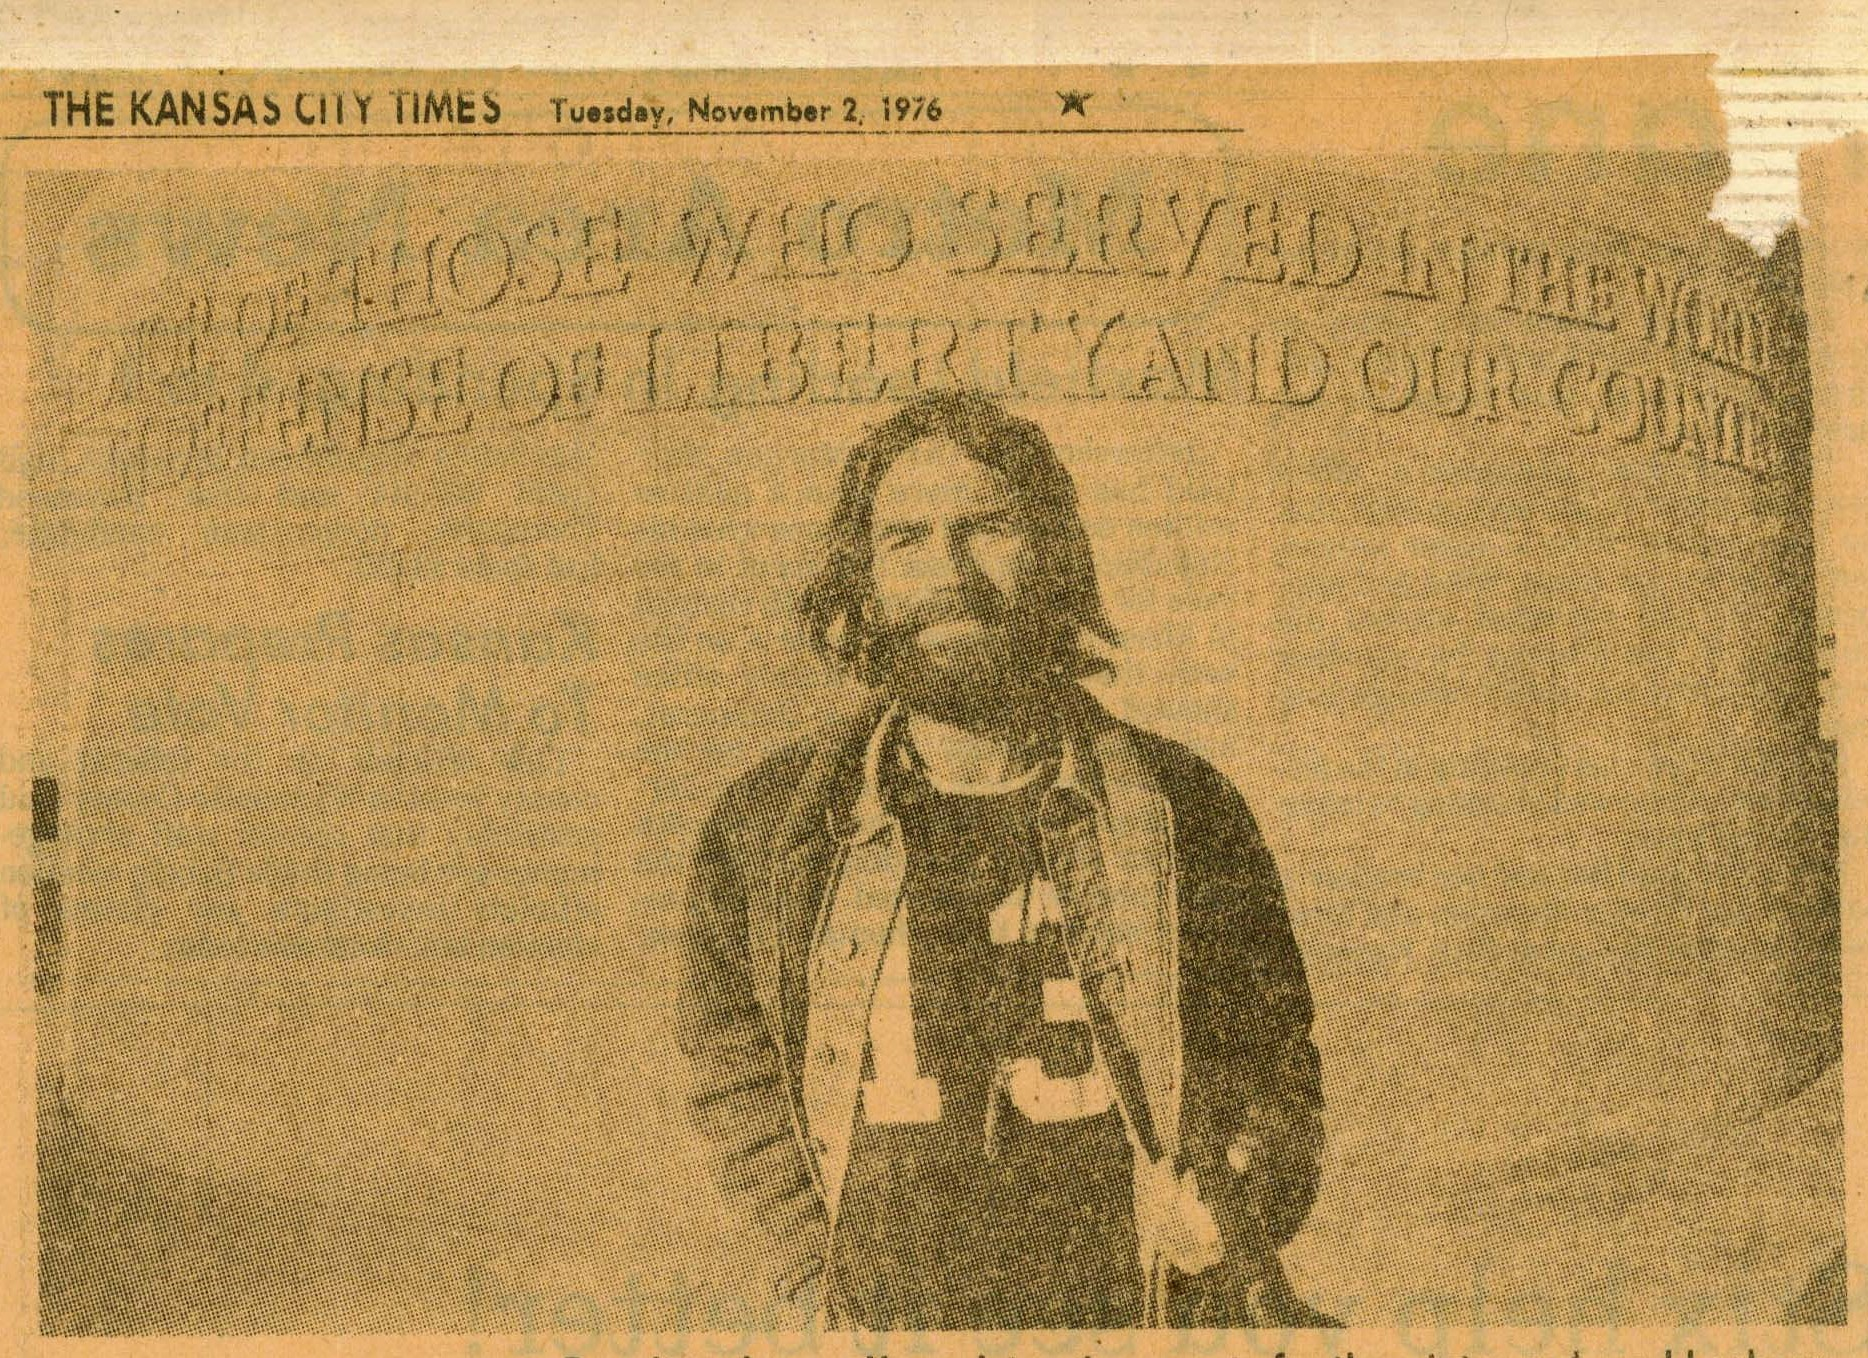 kansas-city-times-november-2-1976-all-souls-day (2)